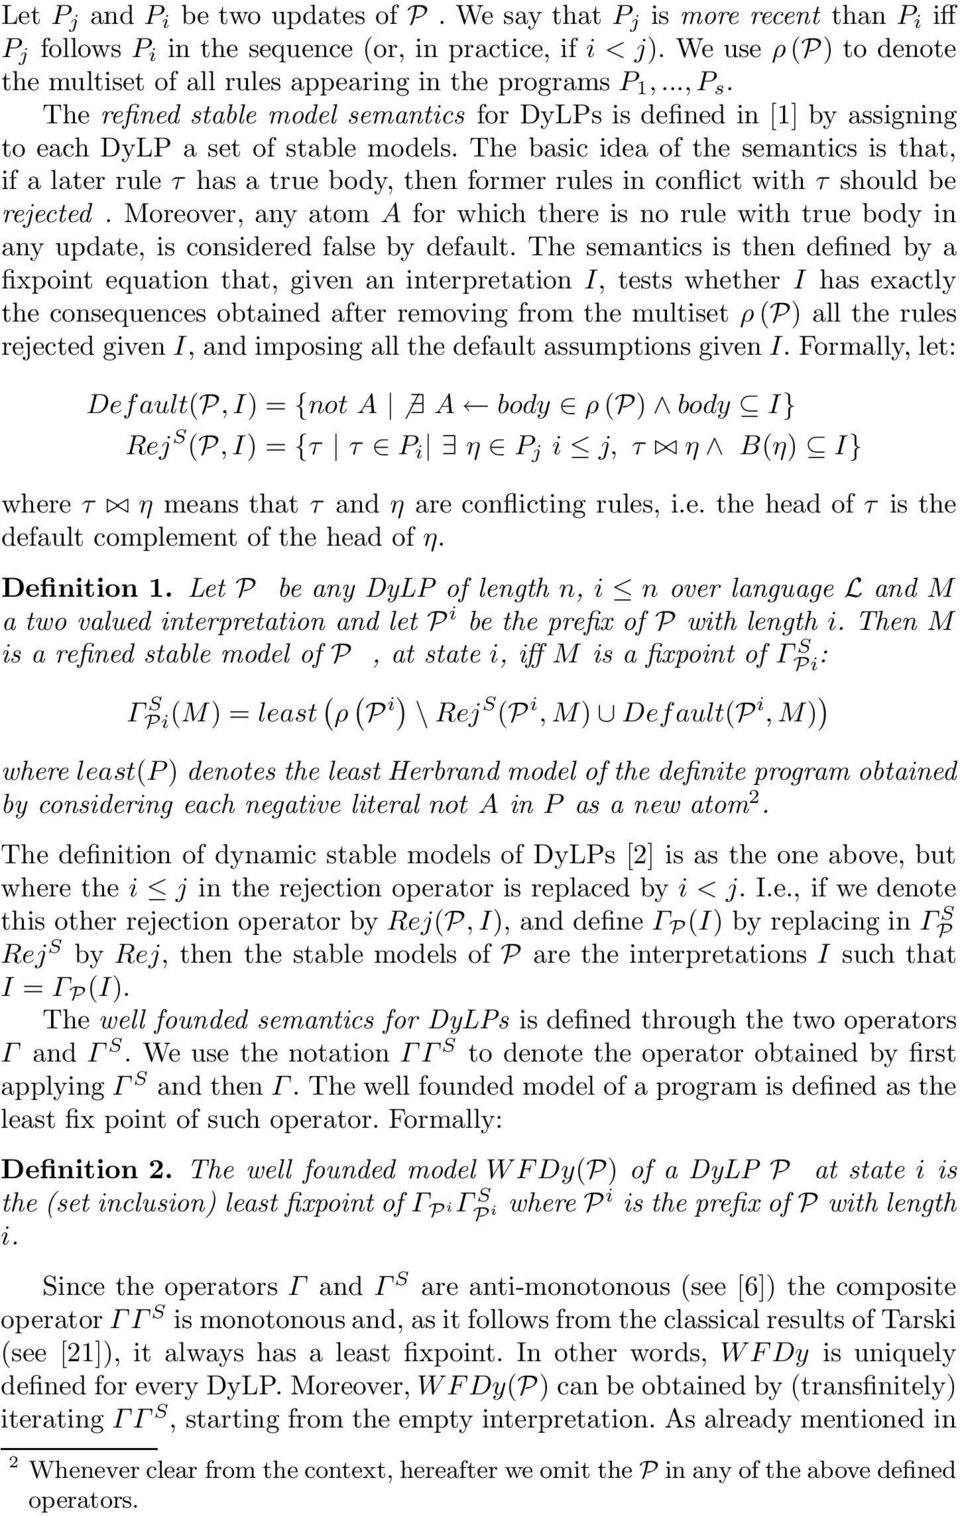 The refined stable model semantics for DyLPs is defined in [1] by assigning to each DyLP a set of stable models.